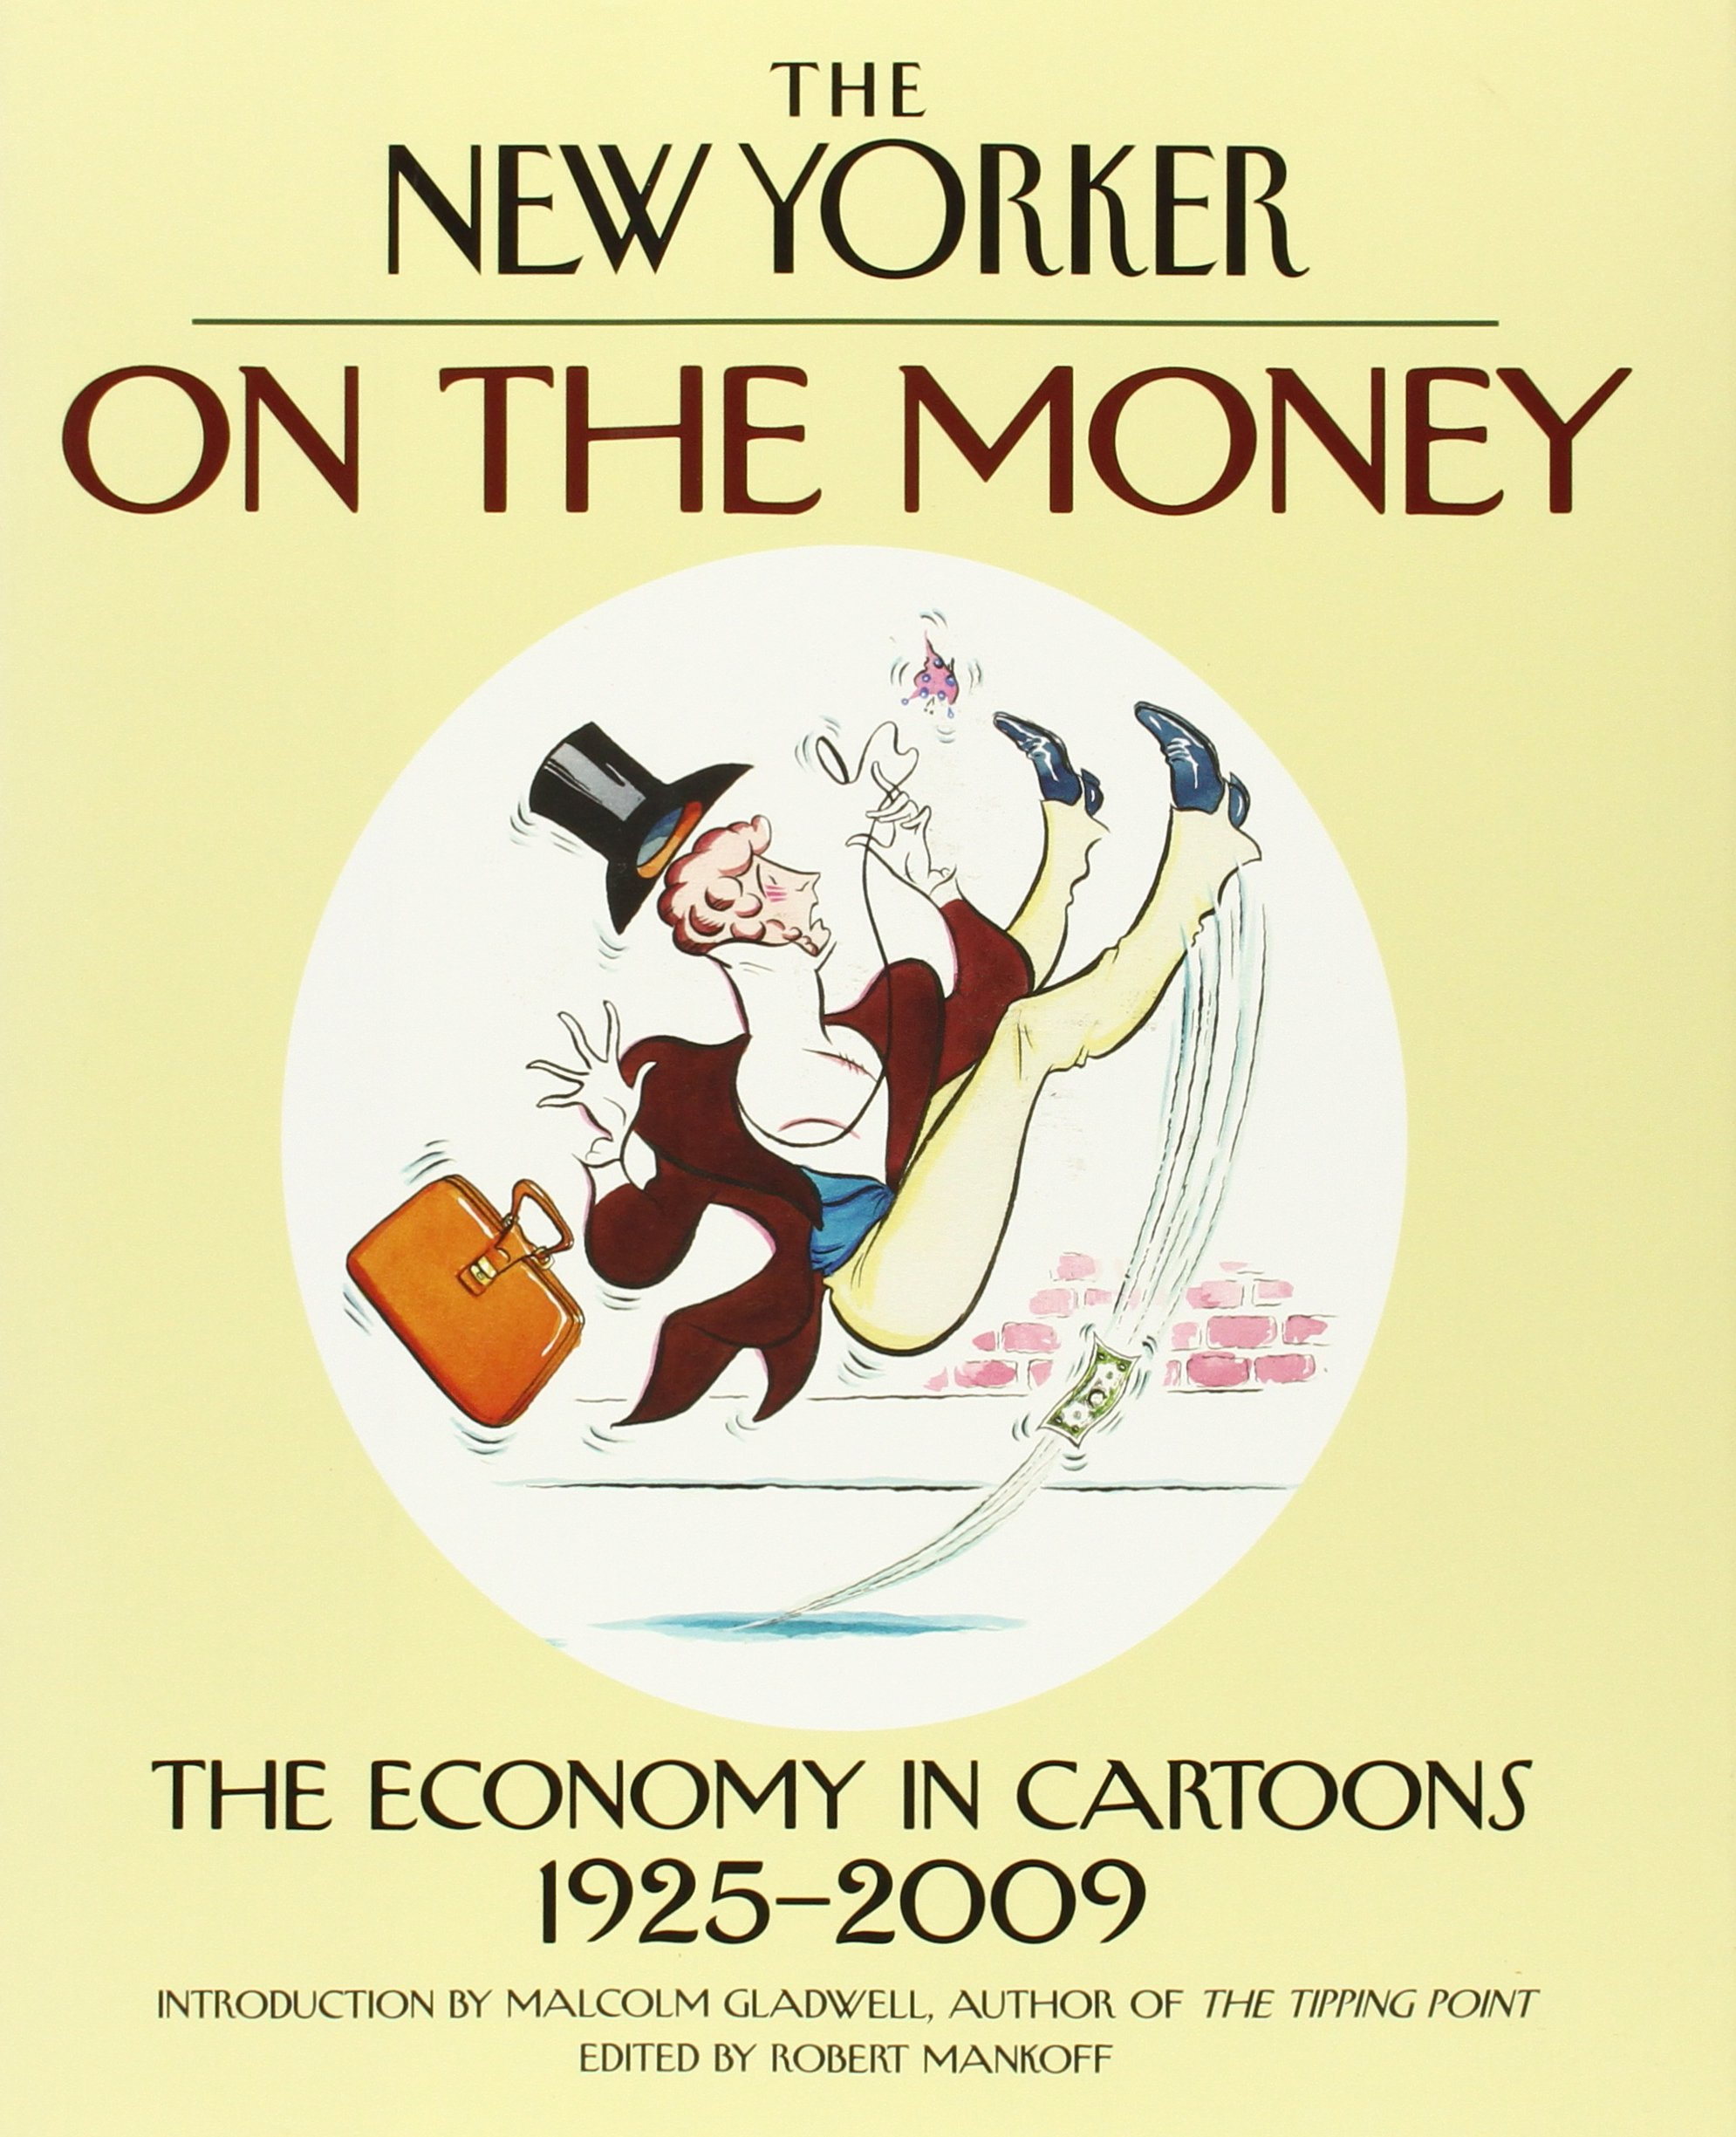 On the Money: The Economy in Cartoons, 1925-2009: The New Yorker, Malcolm  Gladwell: 0050837264632: Amazon.com: Books